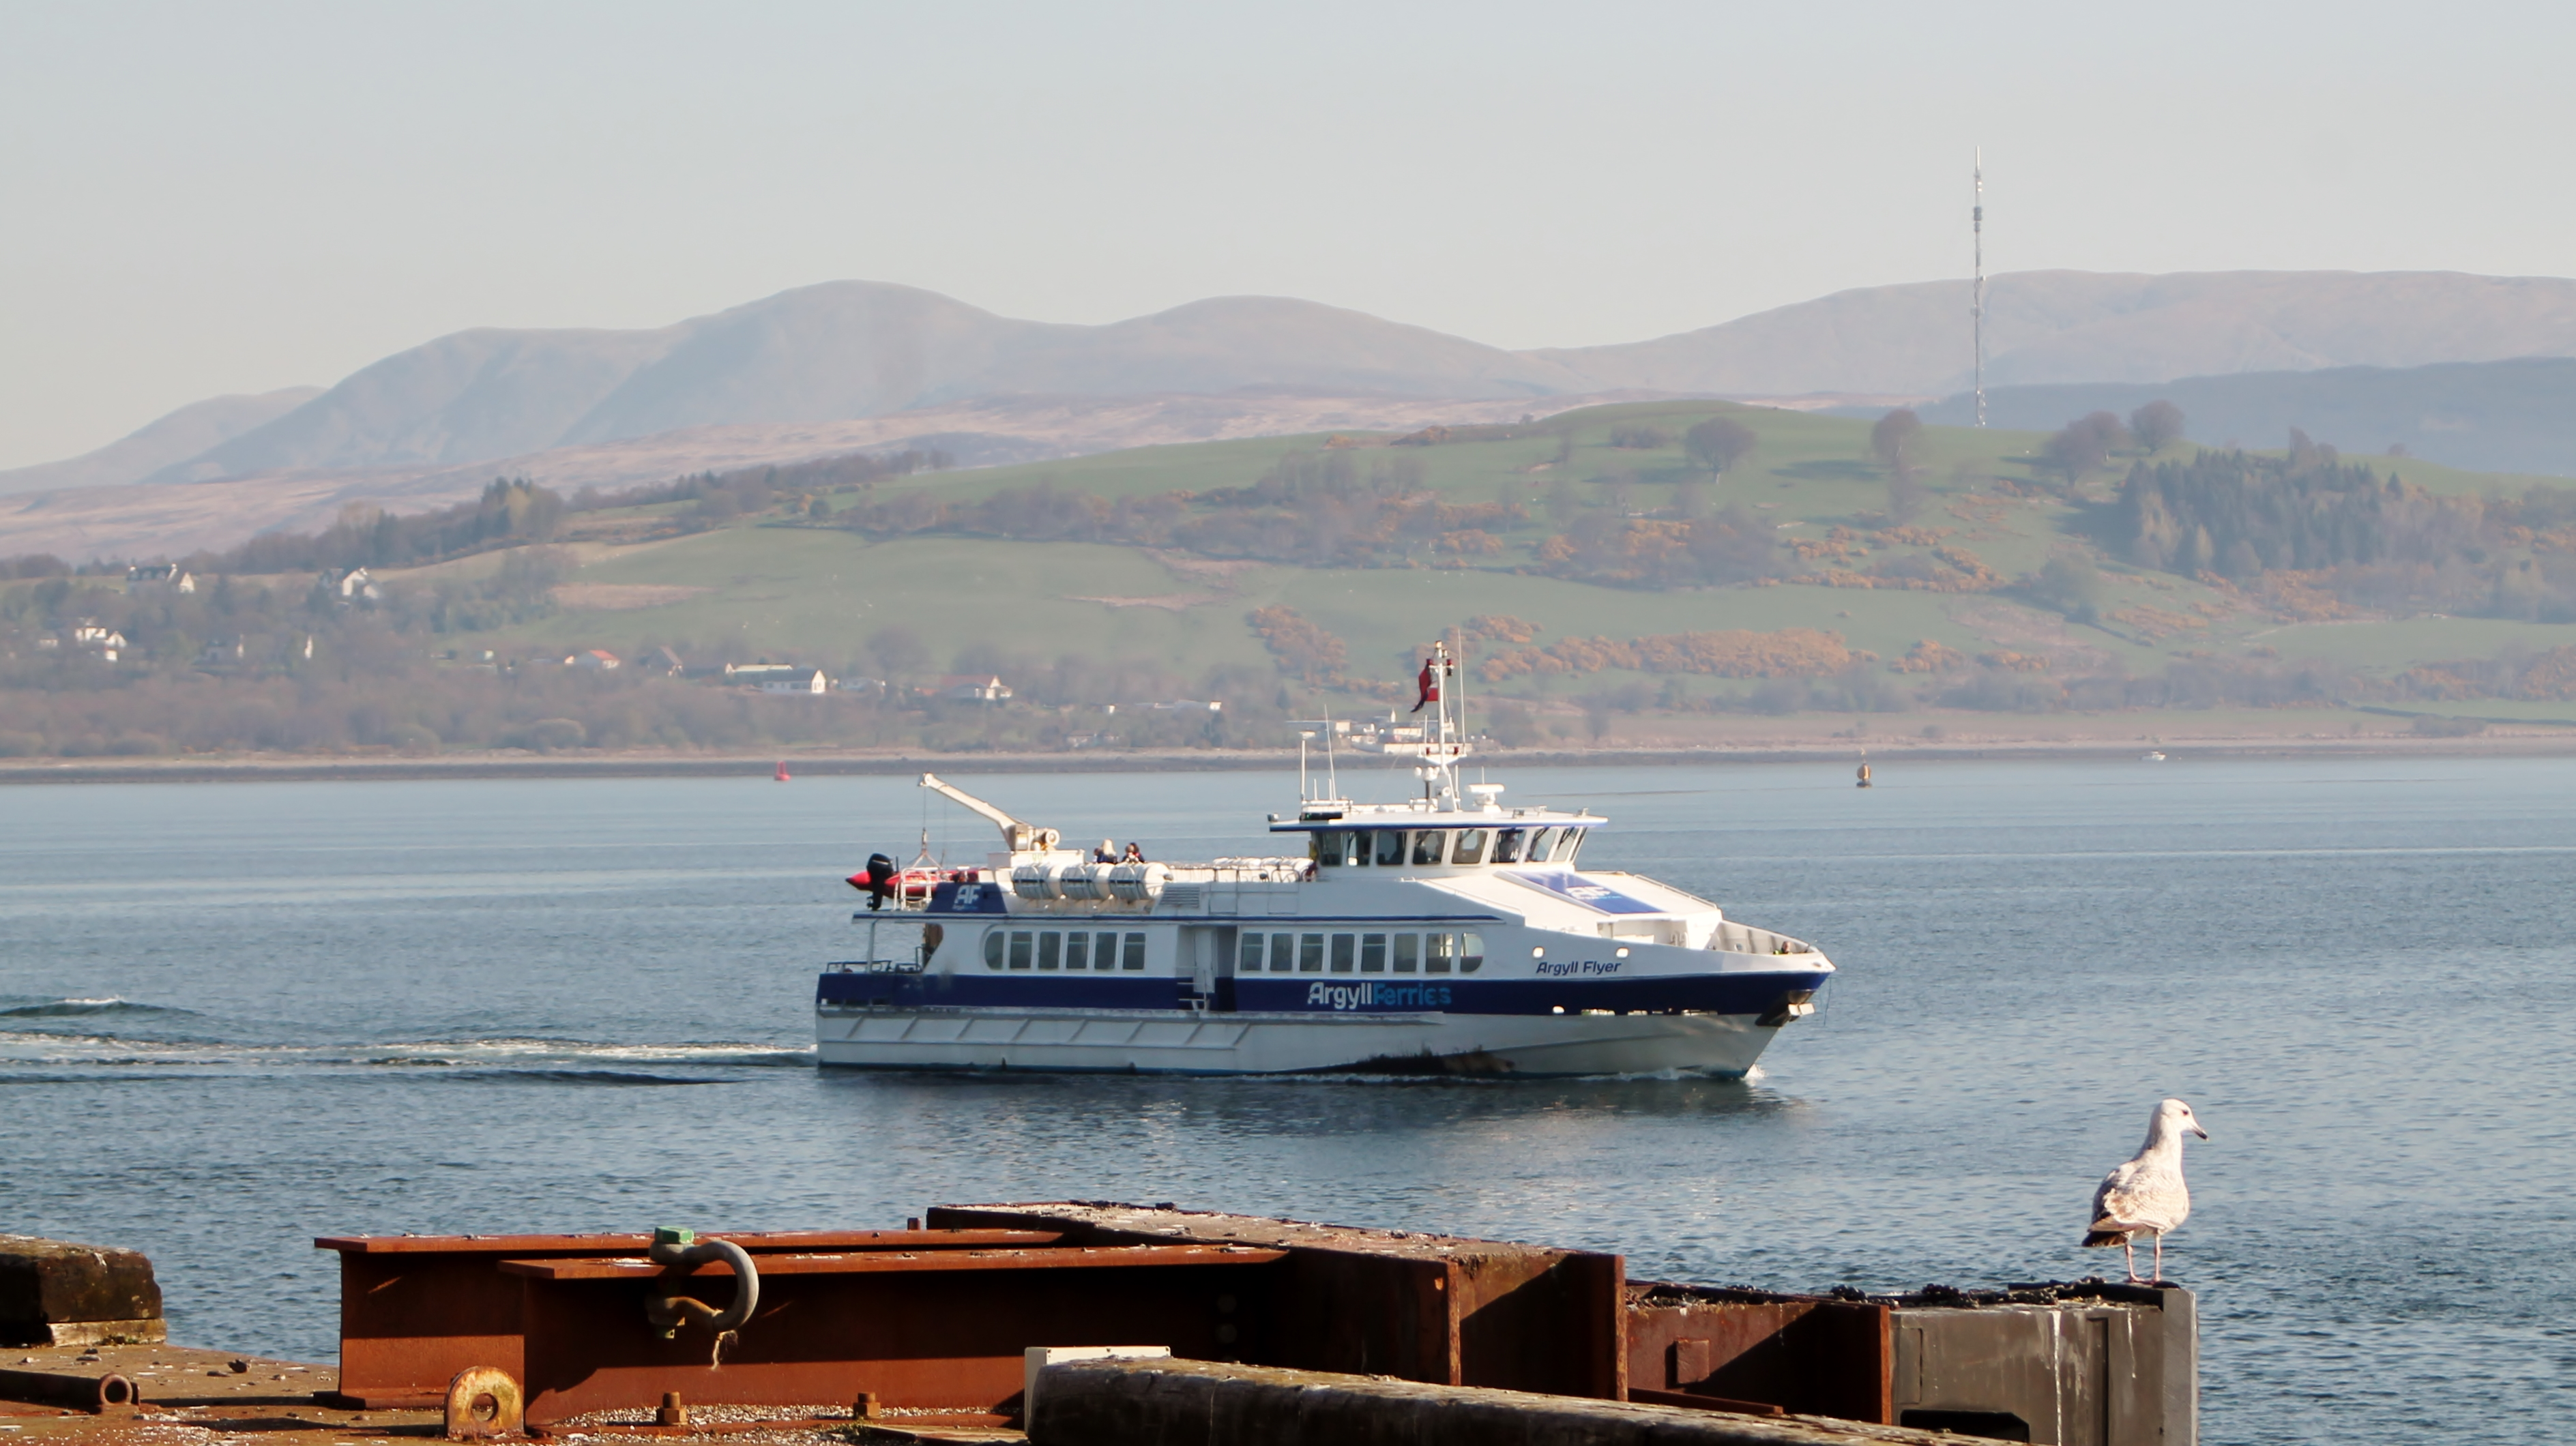 Argyll Flyer approaching Gourock (Ships of CalMac)